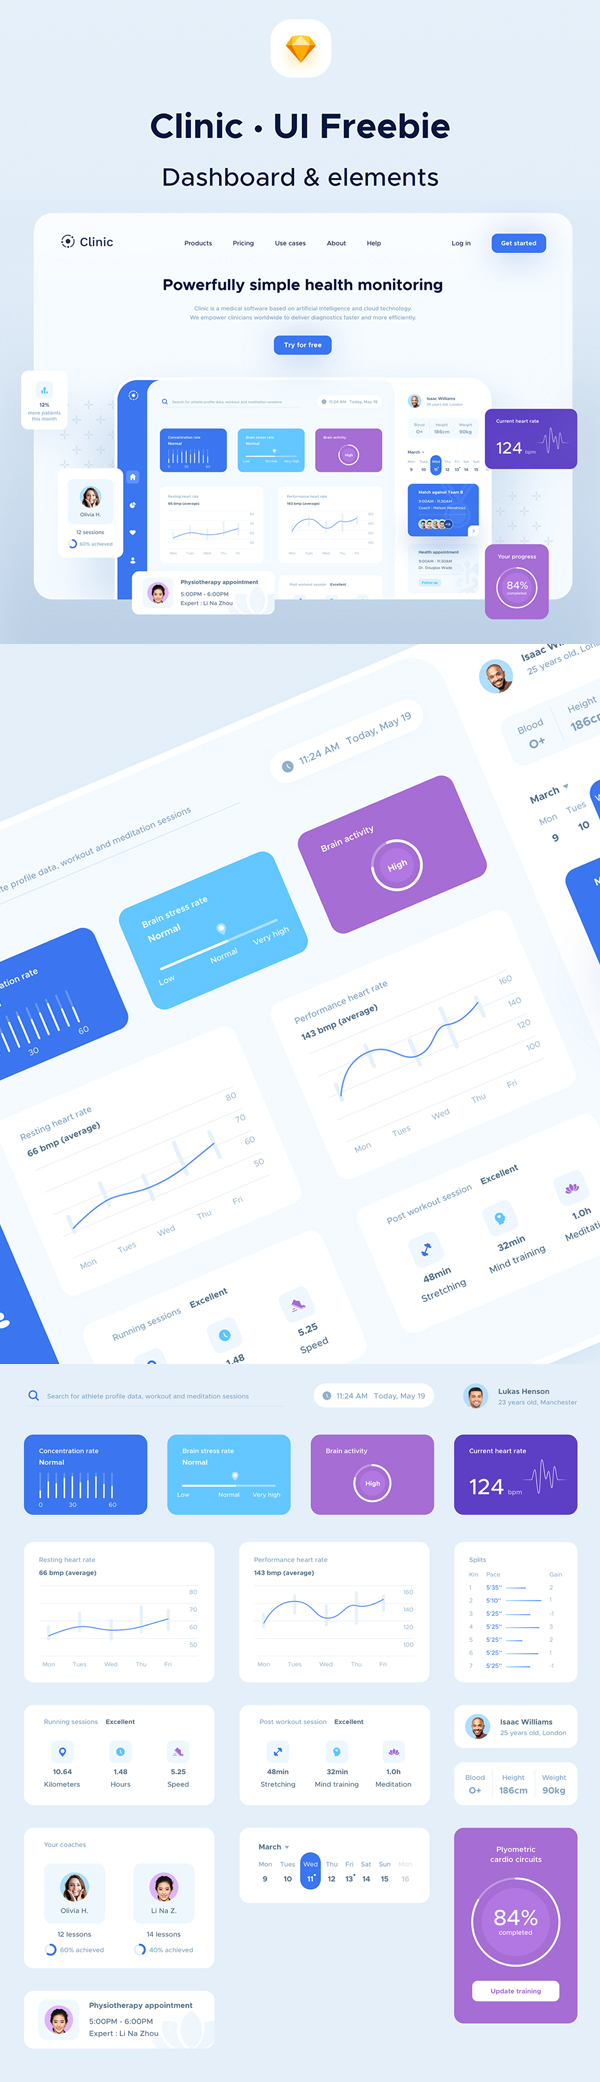 Free Clinic Dashboard UI elements (Sketch) Free Font